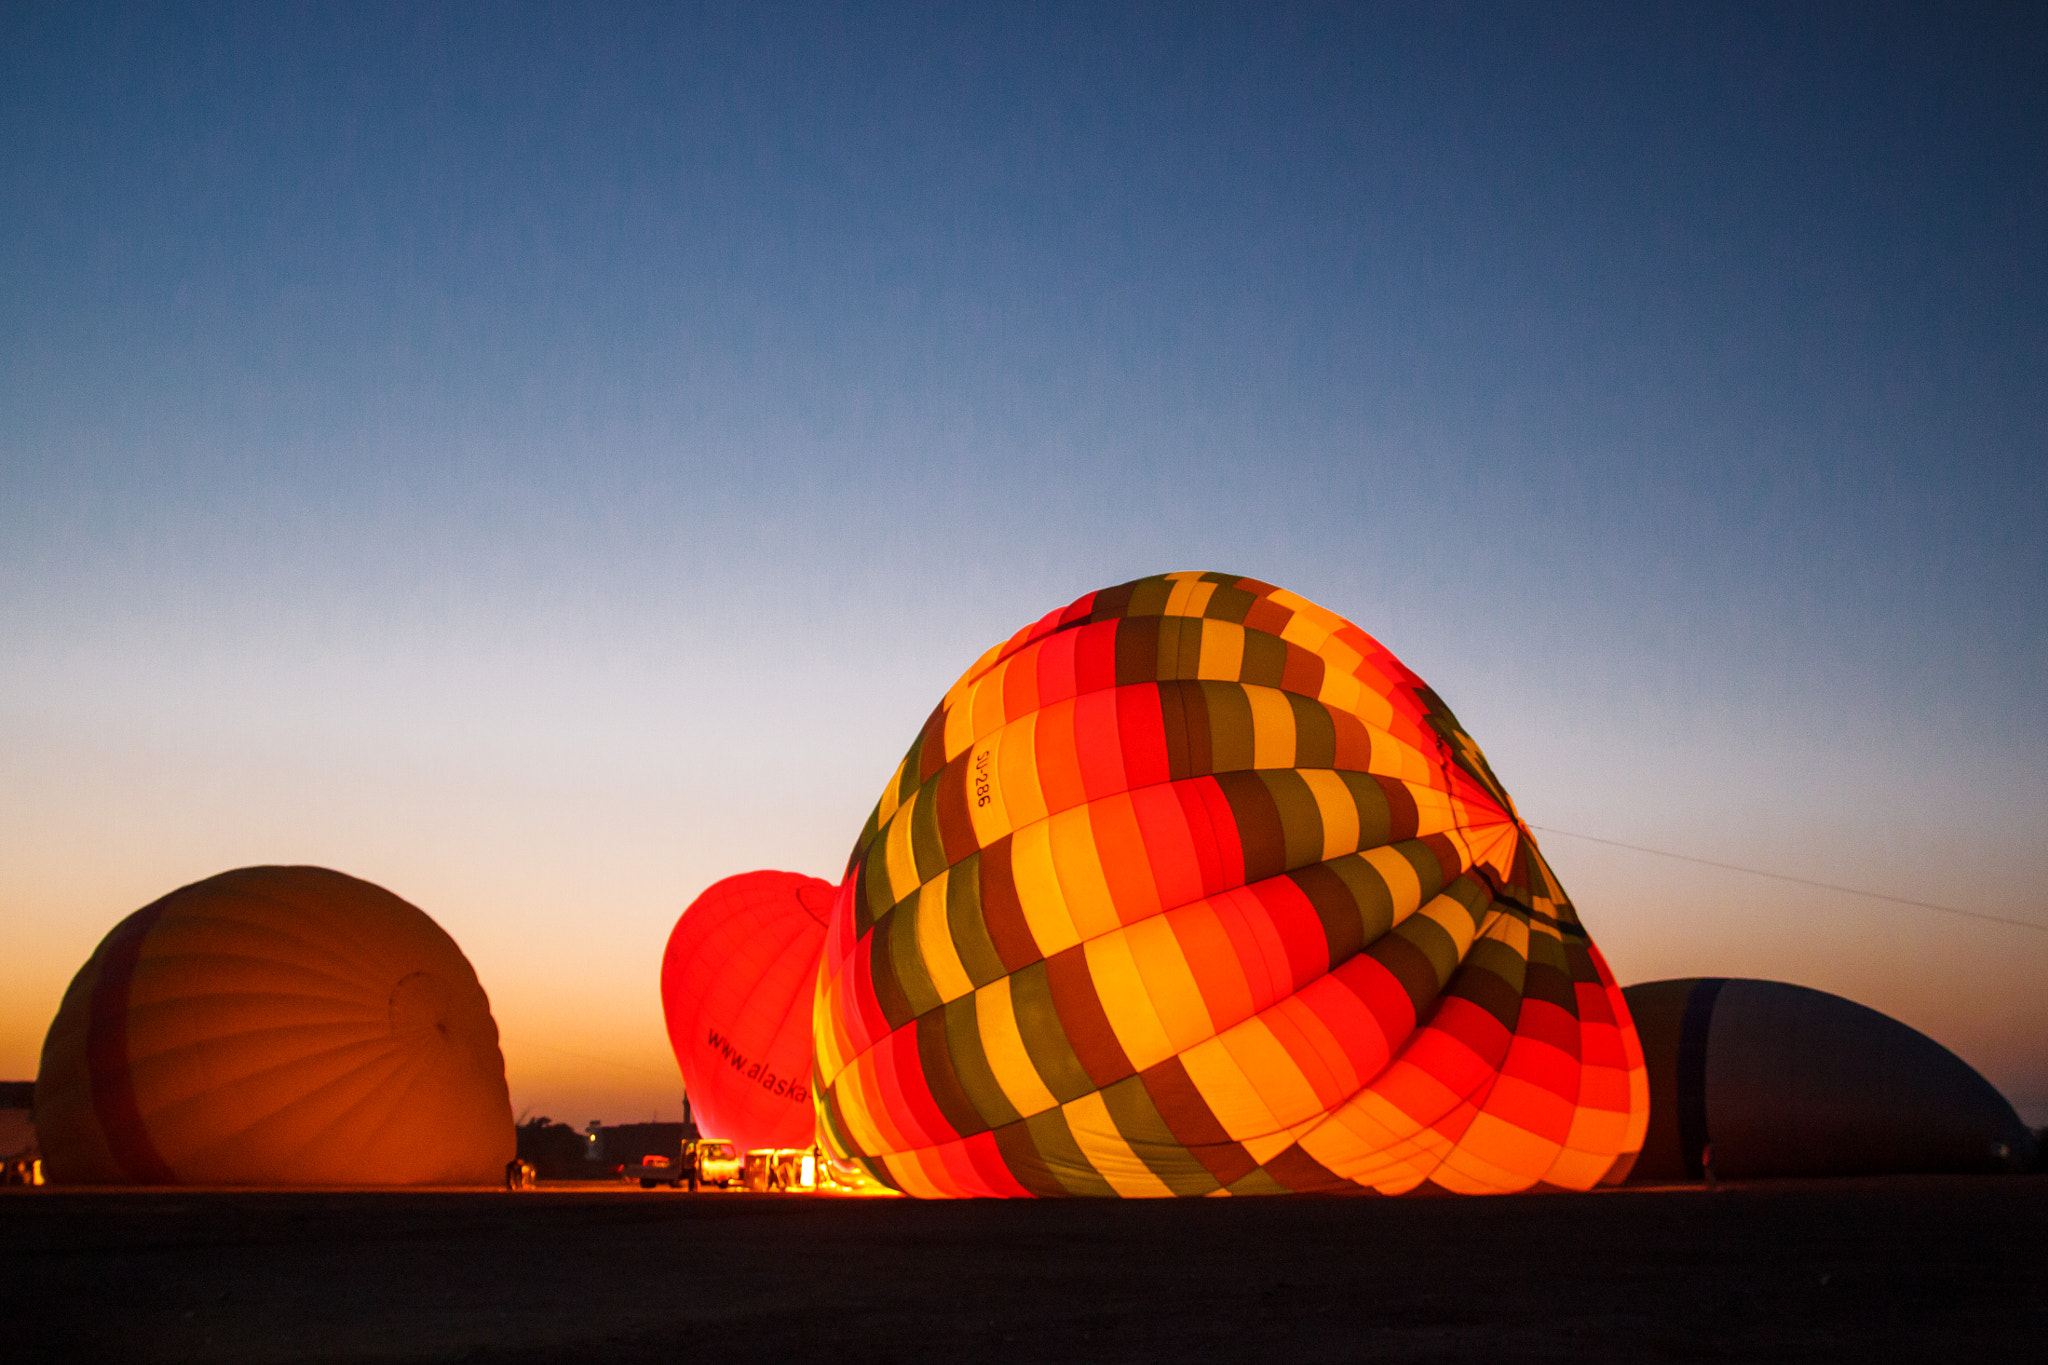 Photograph Hot Air Balloon by William Kong on 500px